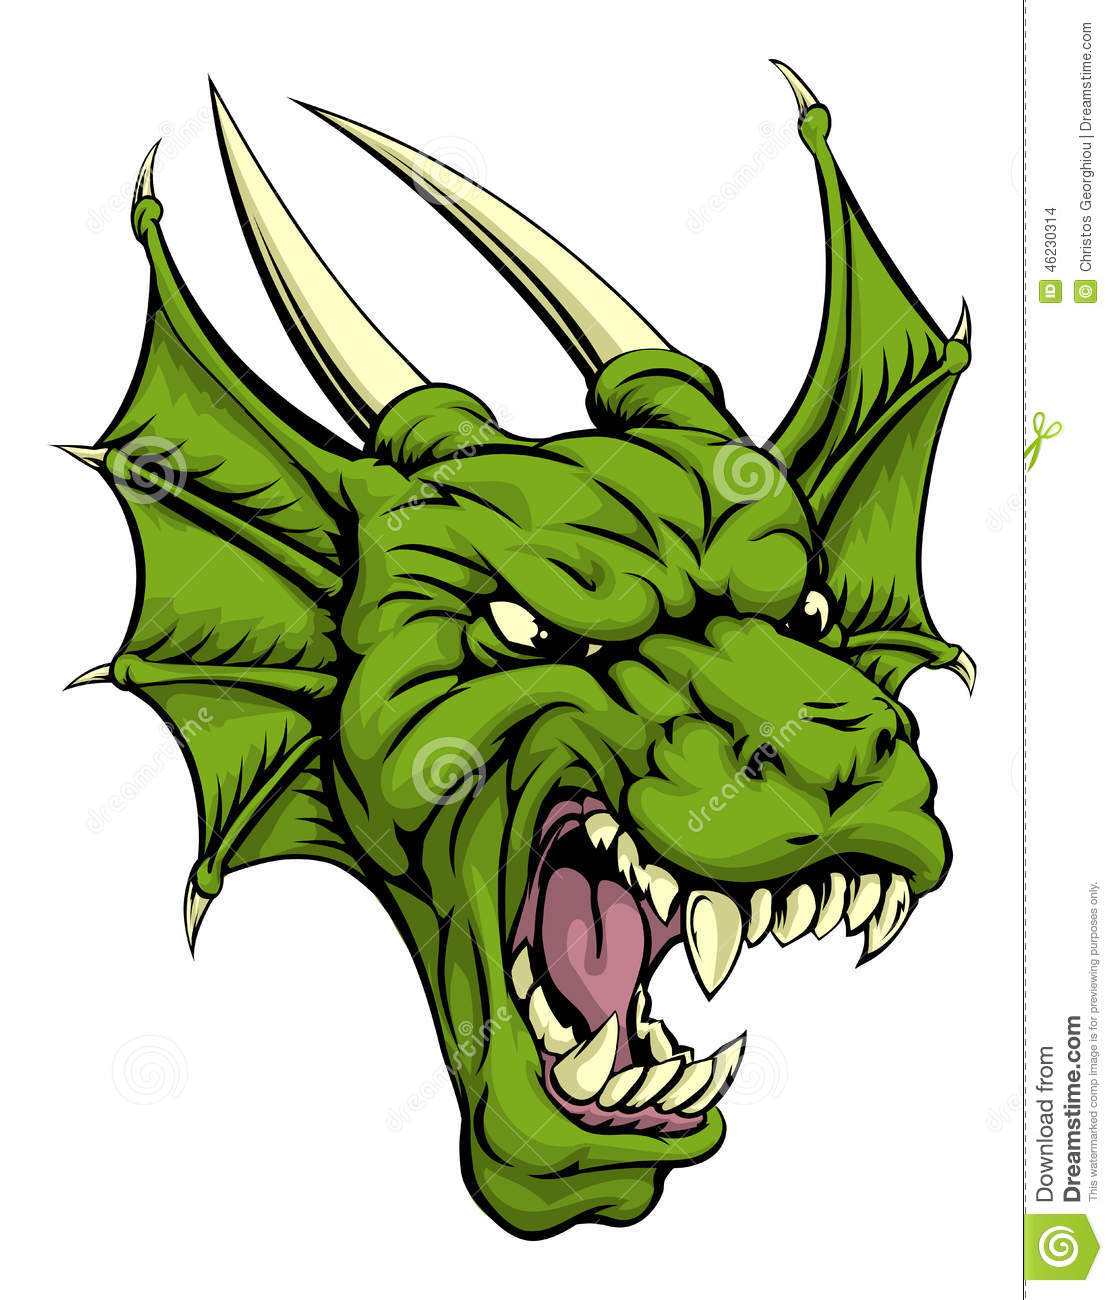 Dragon clipart toothless. At getdrawings com free